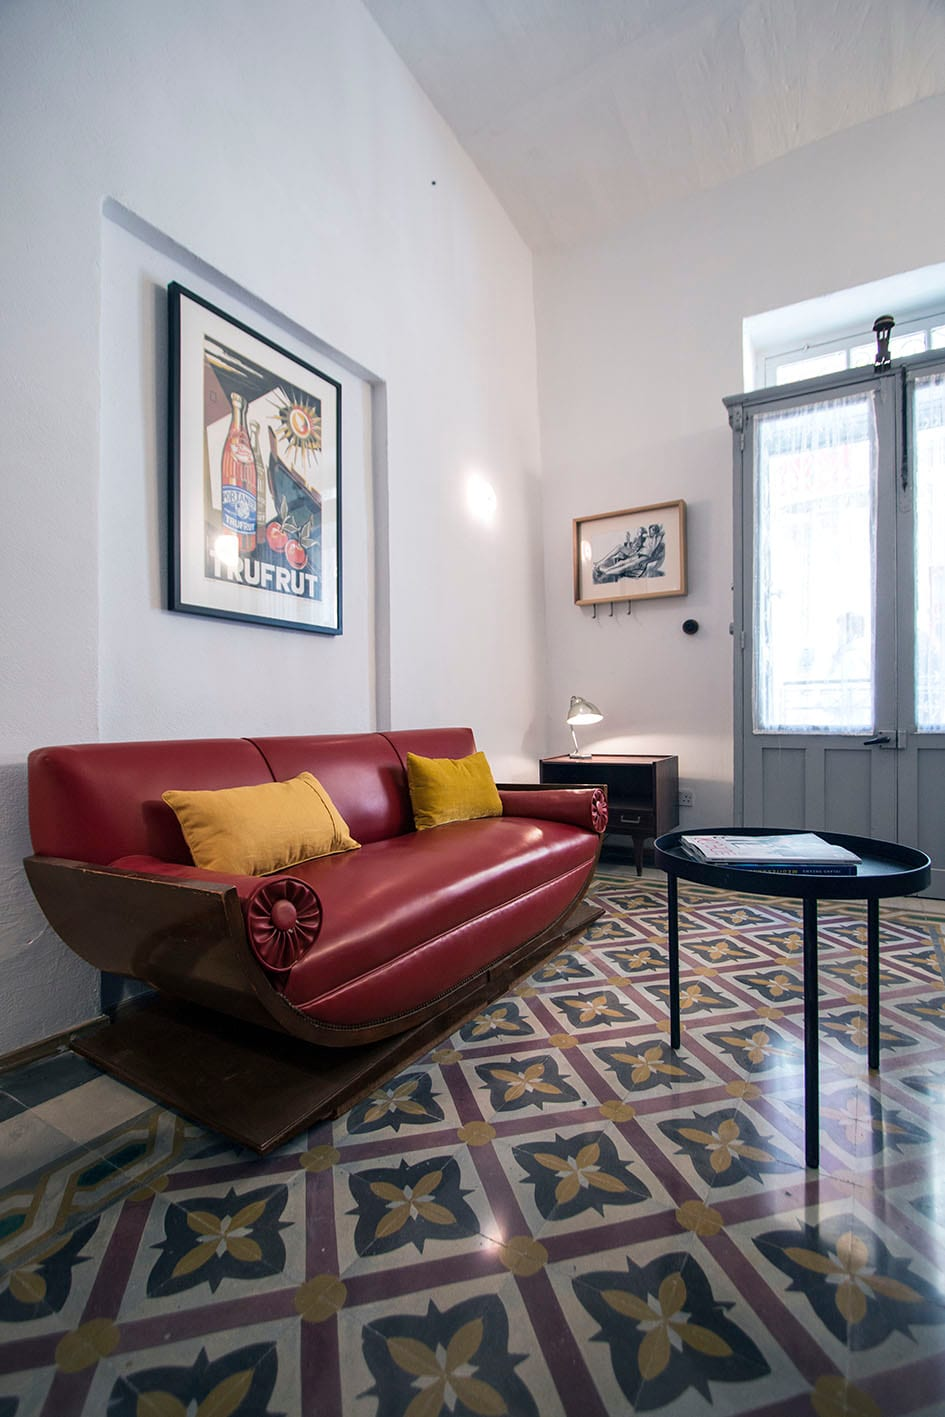 Sitting area upon entry with vintage deco sofa and old, traditional Maltese tiles.